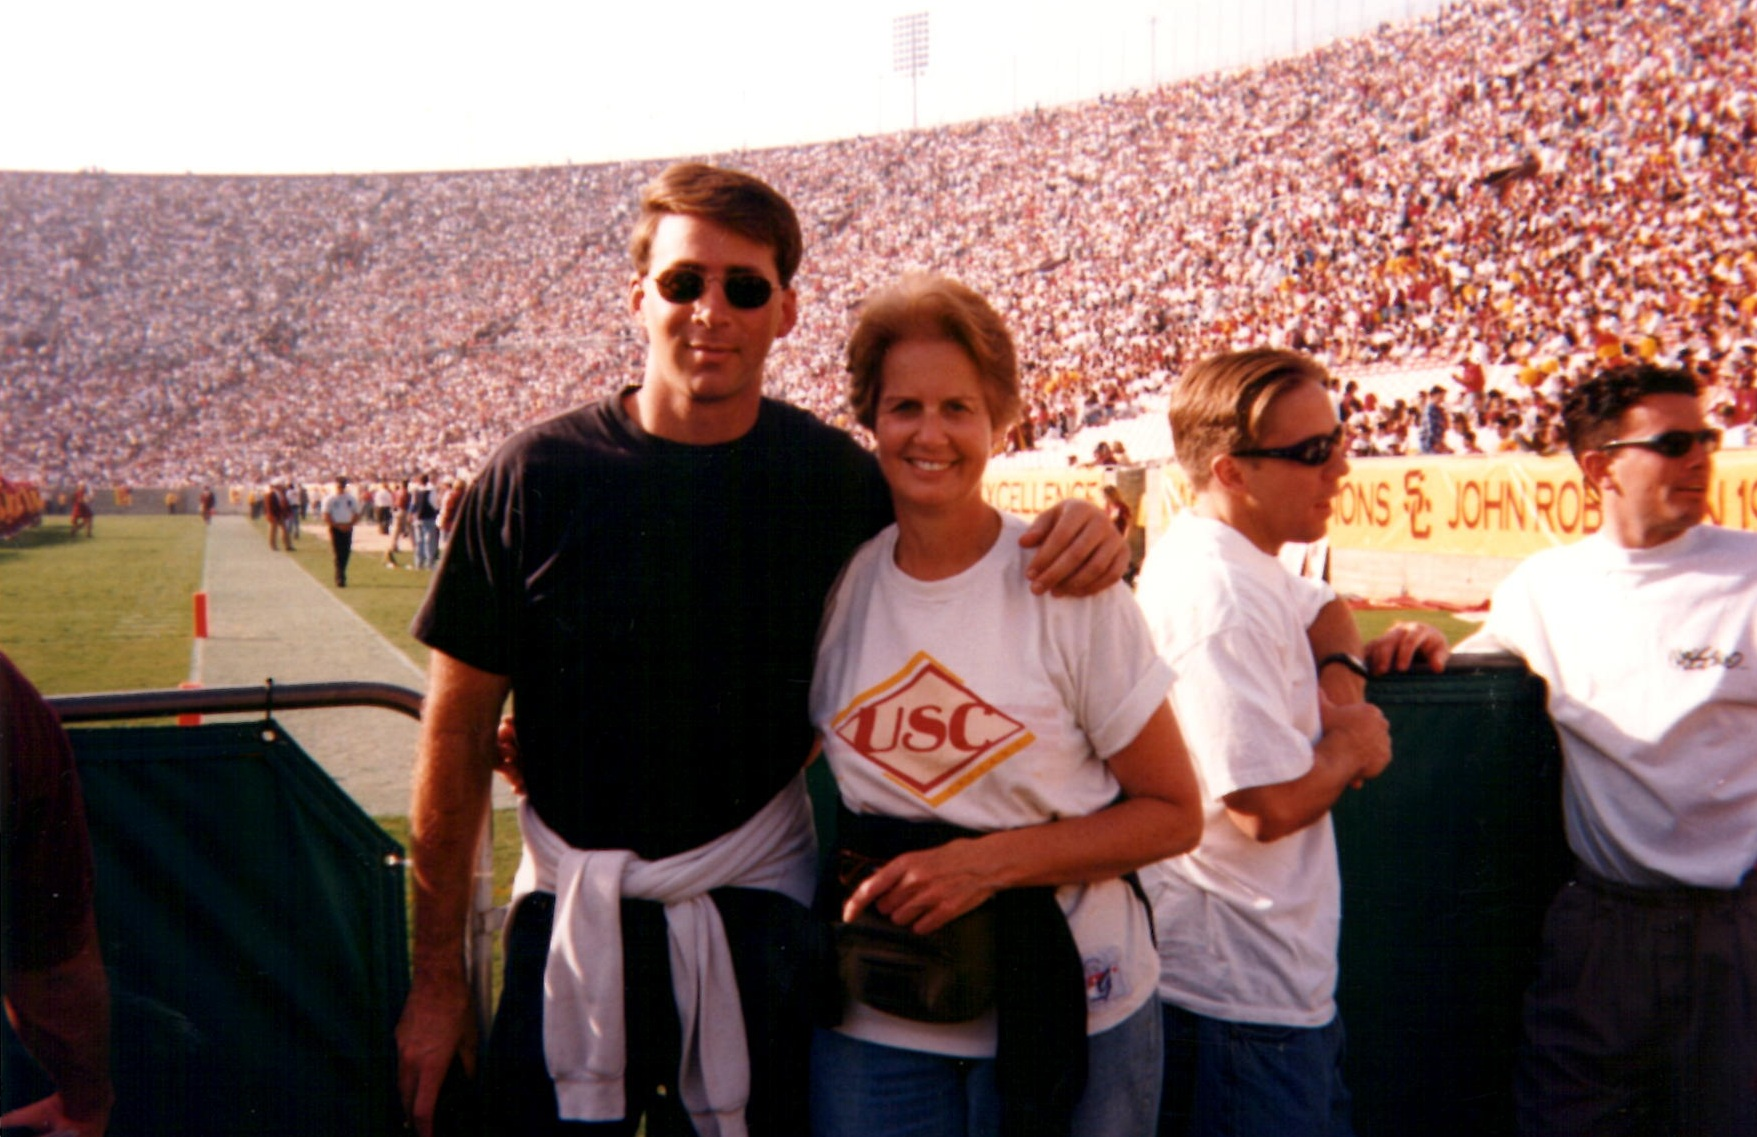 Mom and I at the Coliseum